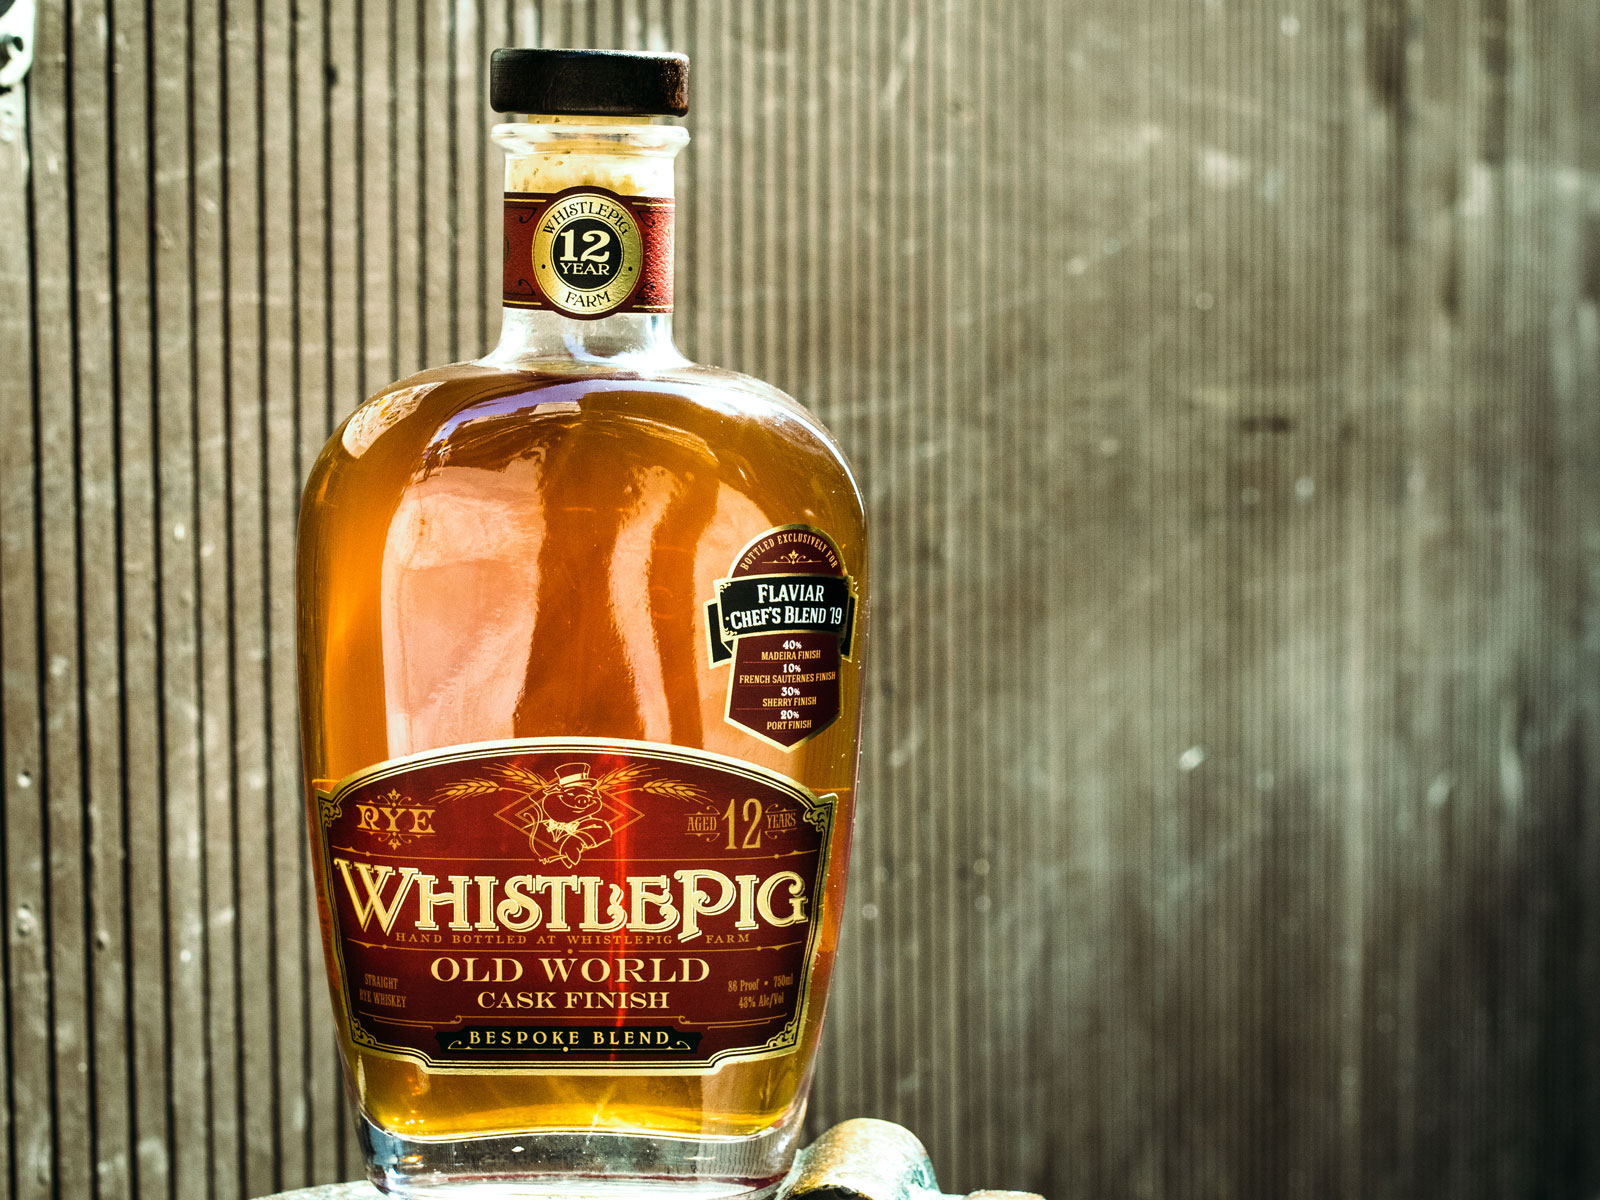 whistlepig-flaviar-chefs-blend-FT-BLOG0919.jpg